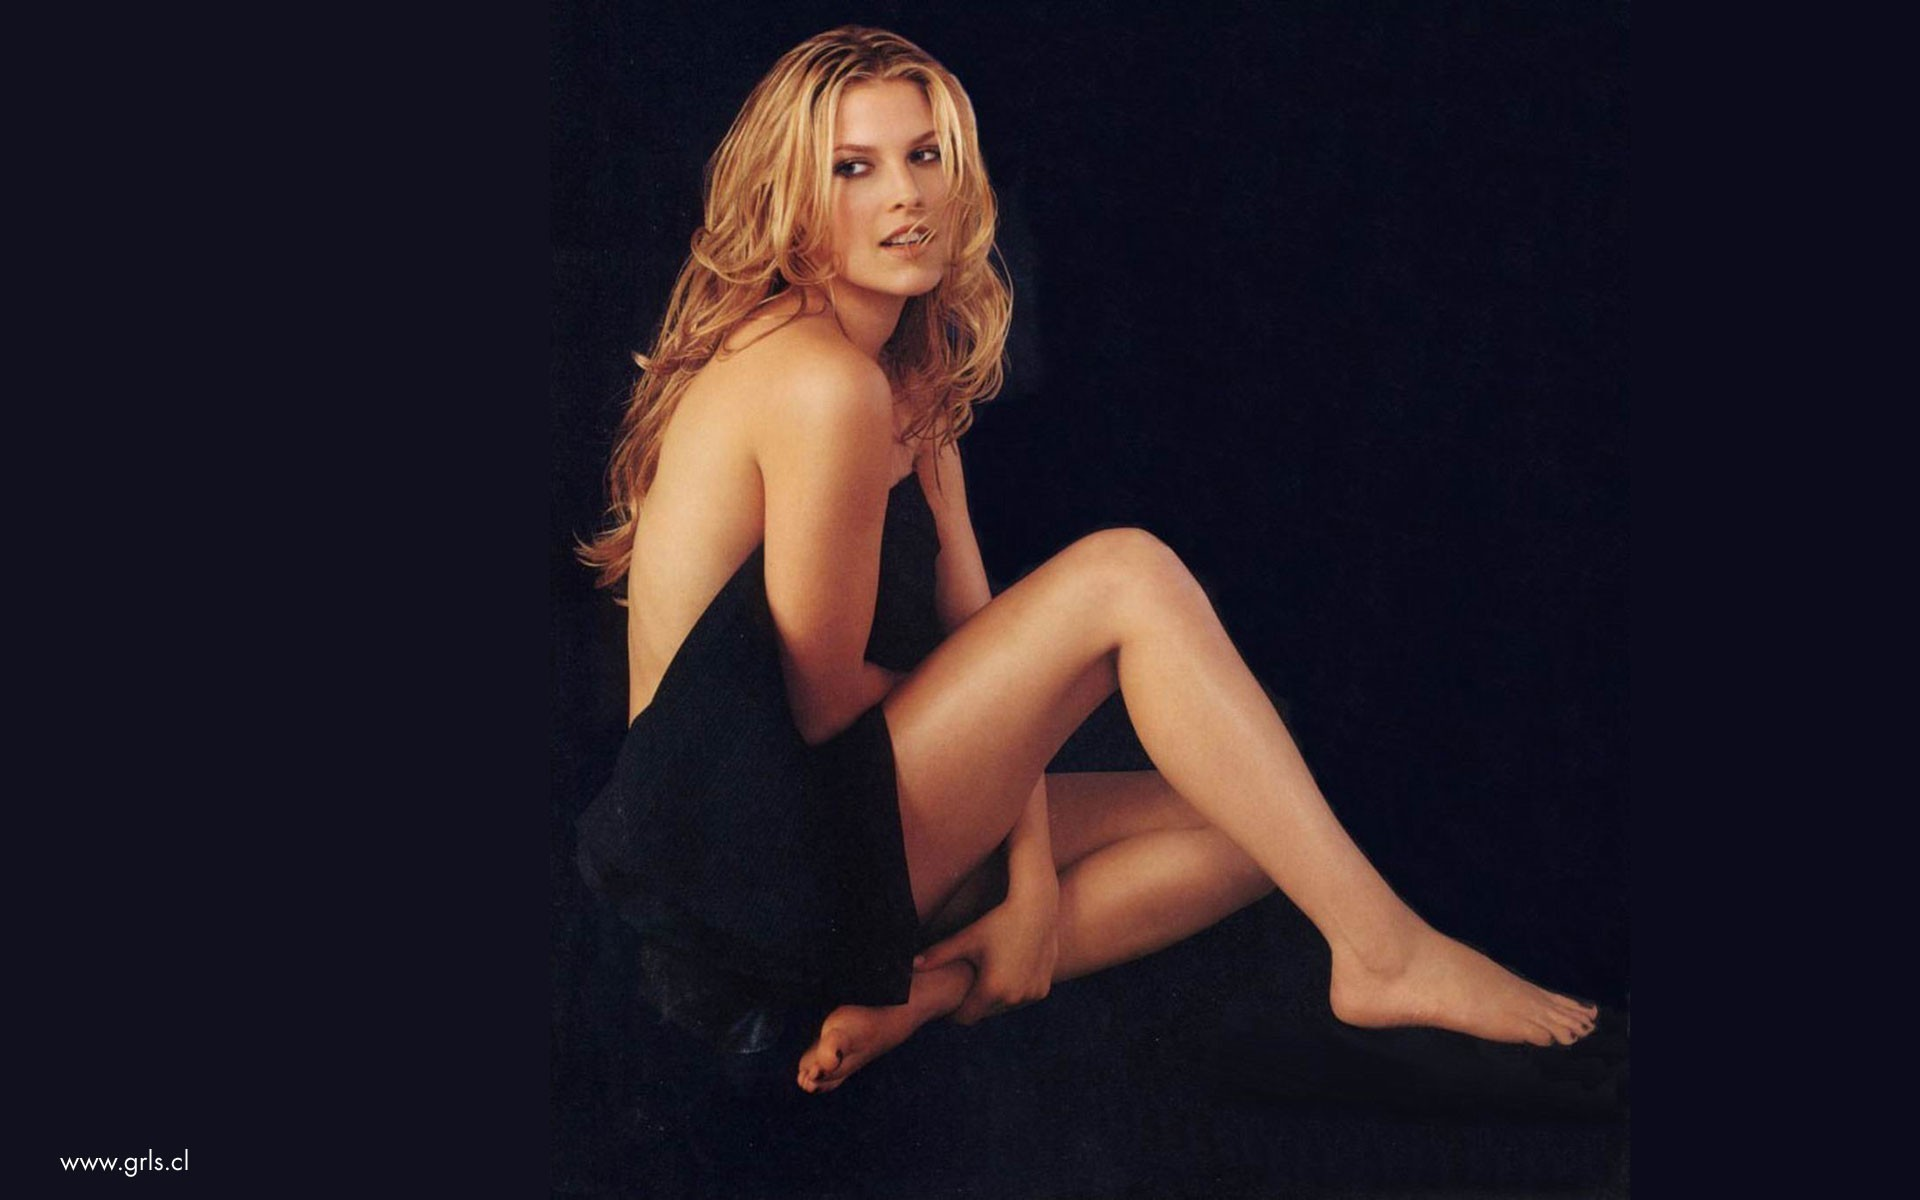 blondes legs woman feet HD Wallpaper